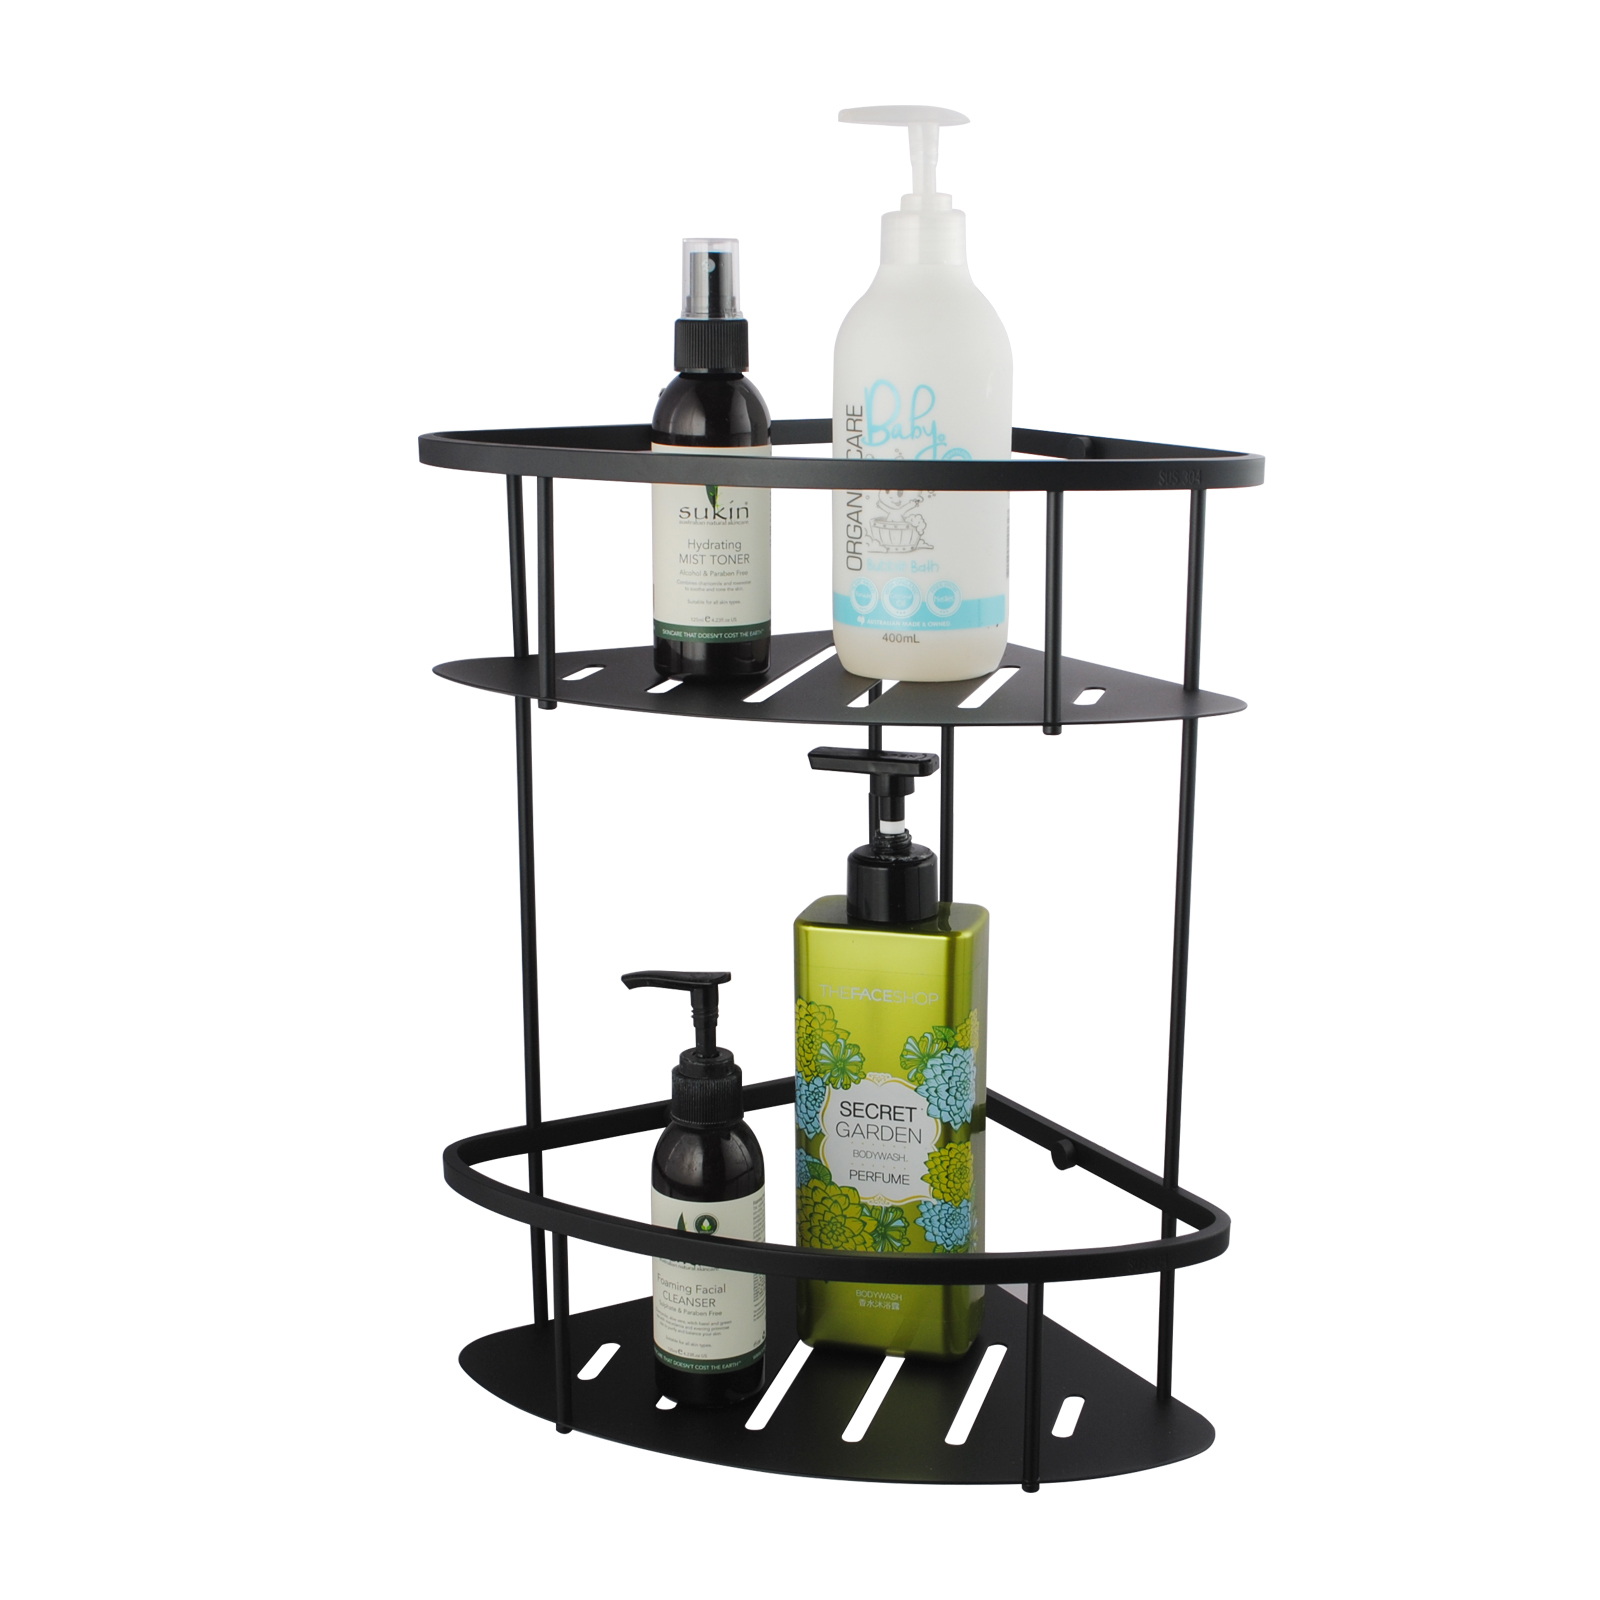 Matte Black Stainless Steel 2 Tier Shower Caddy Shelf | Buy Shower ...